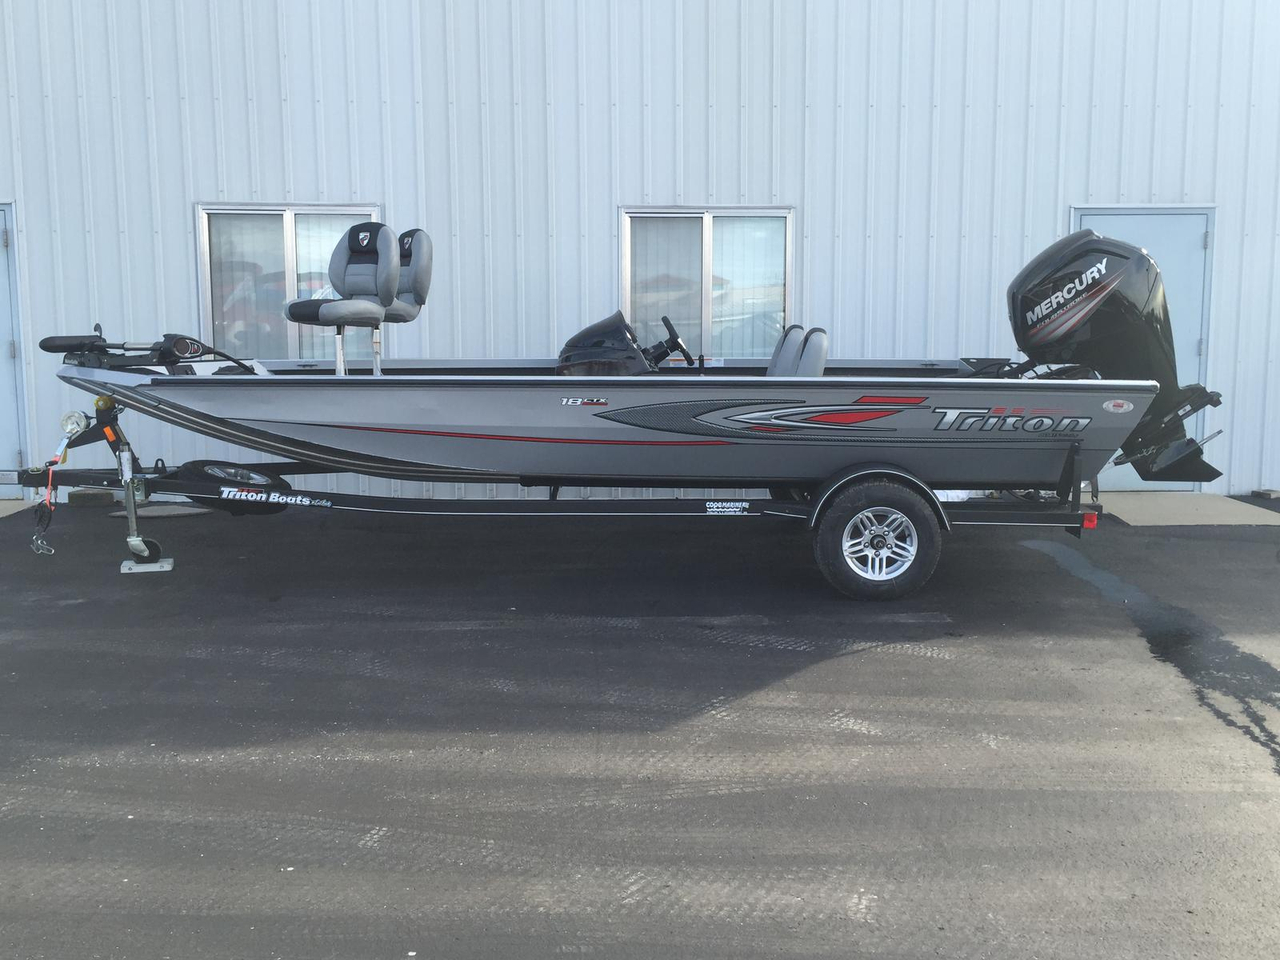 2016 new triton boats 18 ctx center console fishing boat for New fishing boats for sale